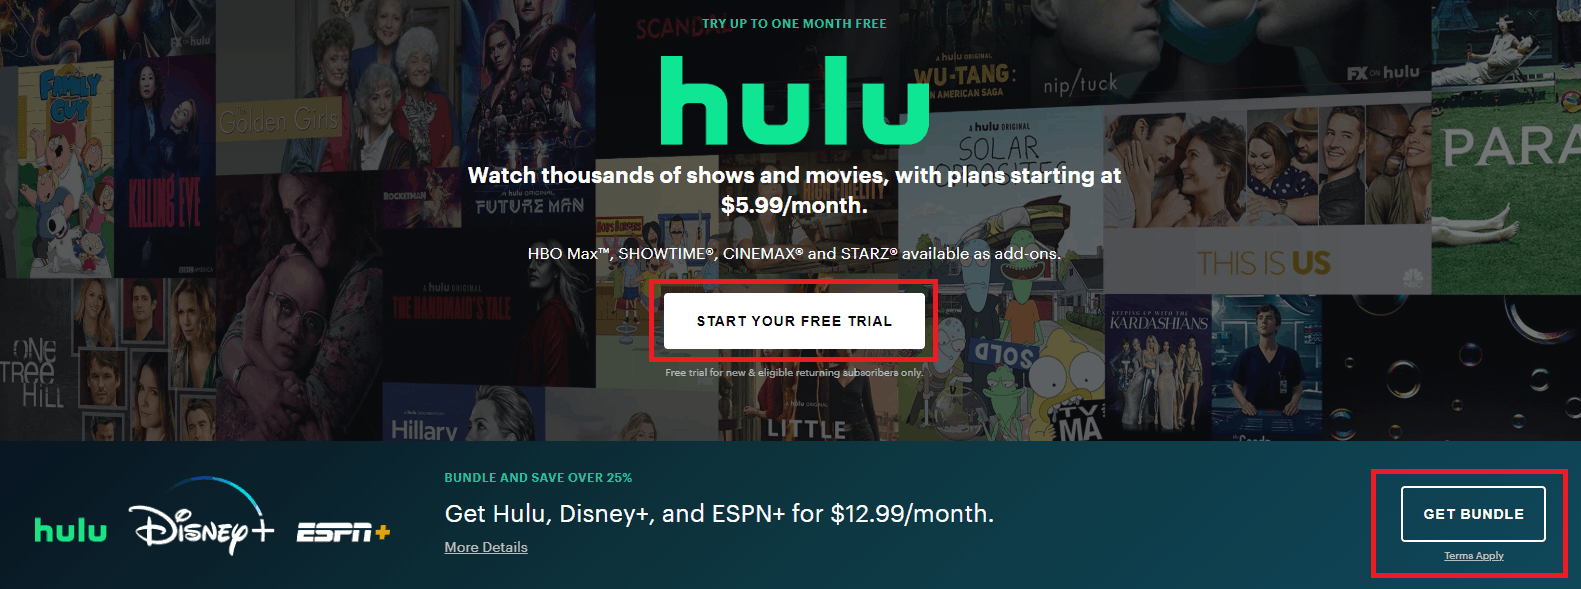 Hulu web interface